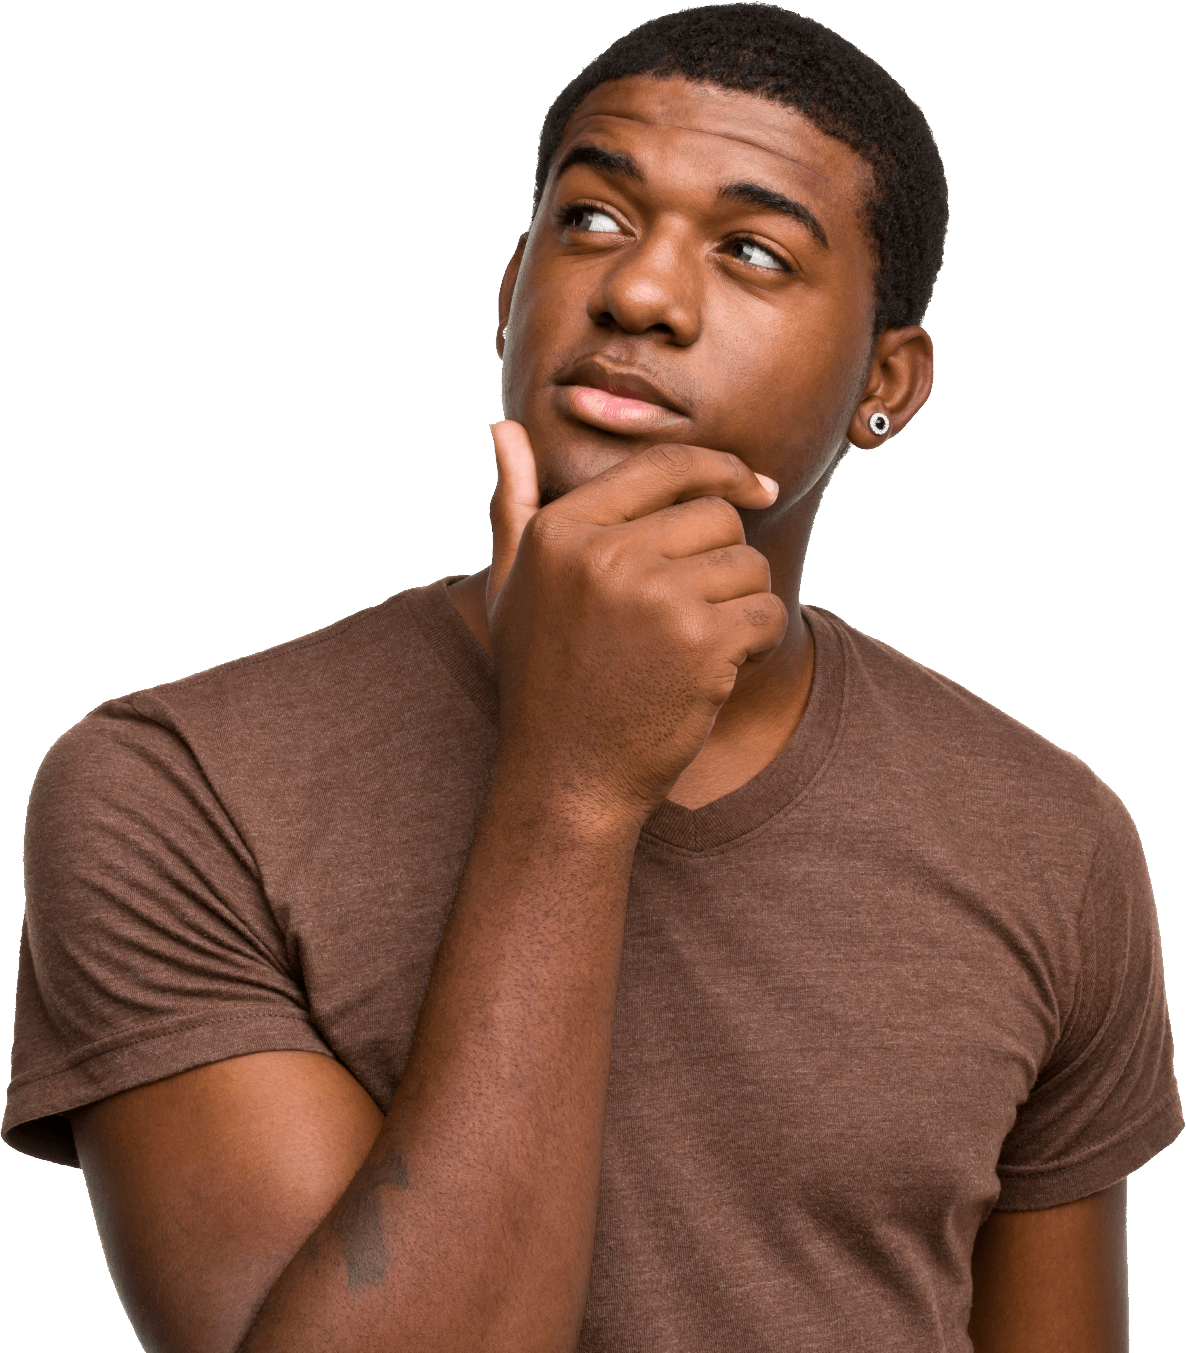 Young clipart thinking. Man looking left transparent